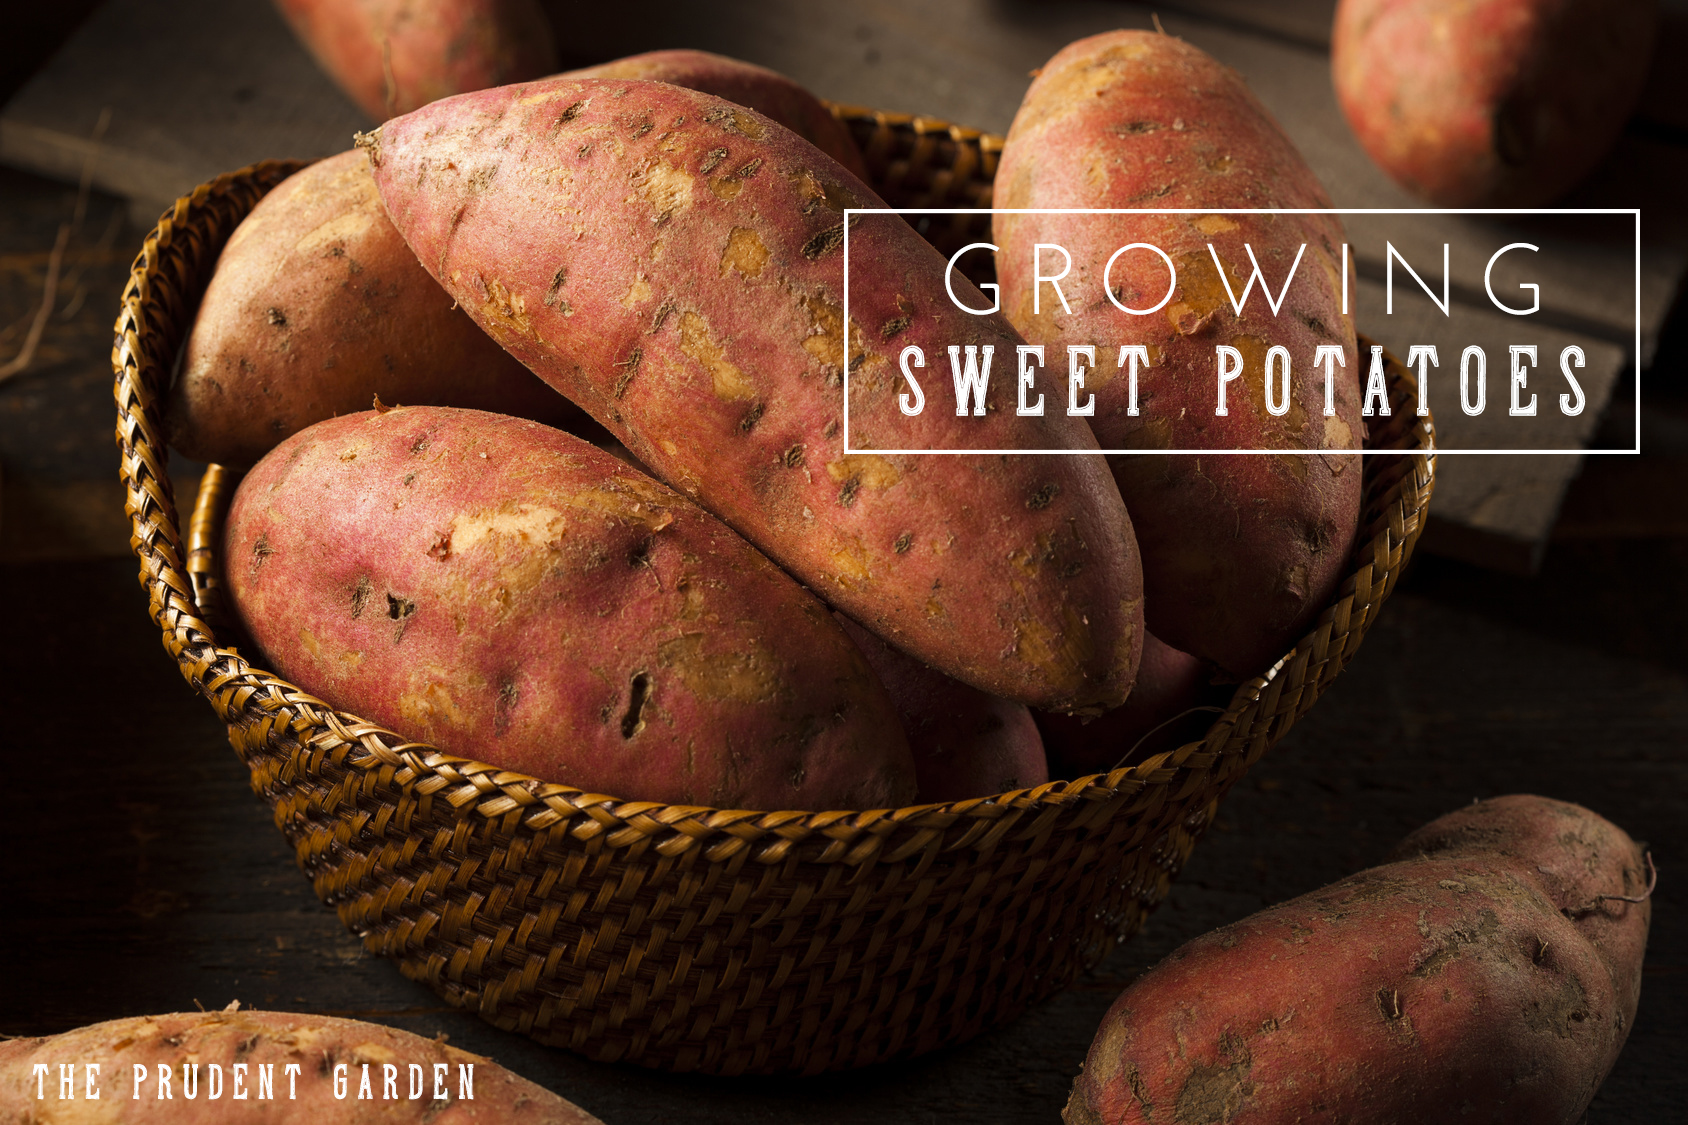 Weeds in flower beds with potato like roots - Growing Sweet Potatoes